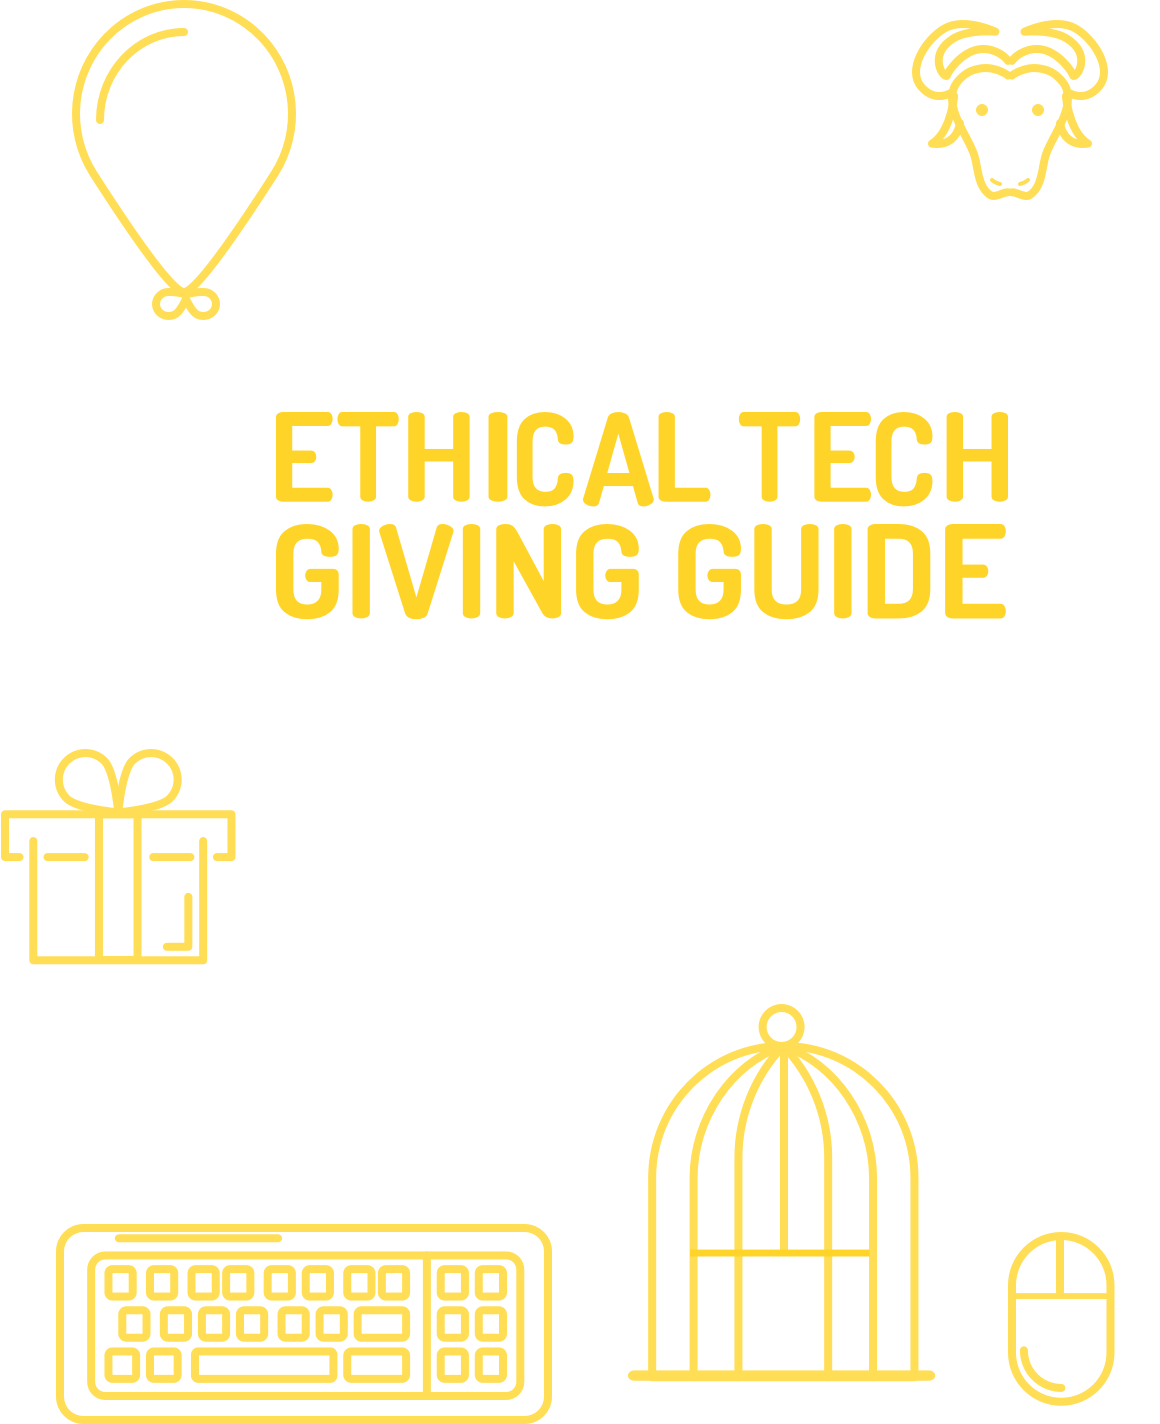 Ethical tech giving guide give the gift of freedom a fandeluxe Image collections